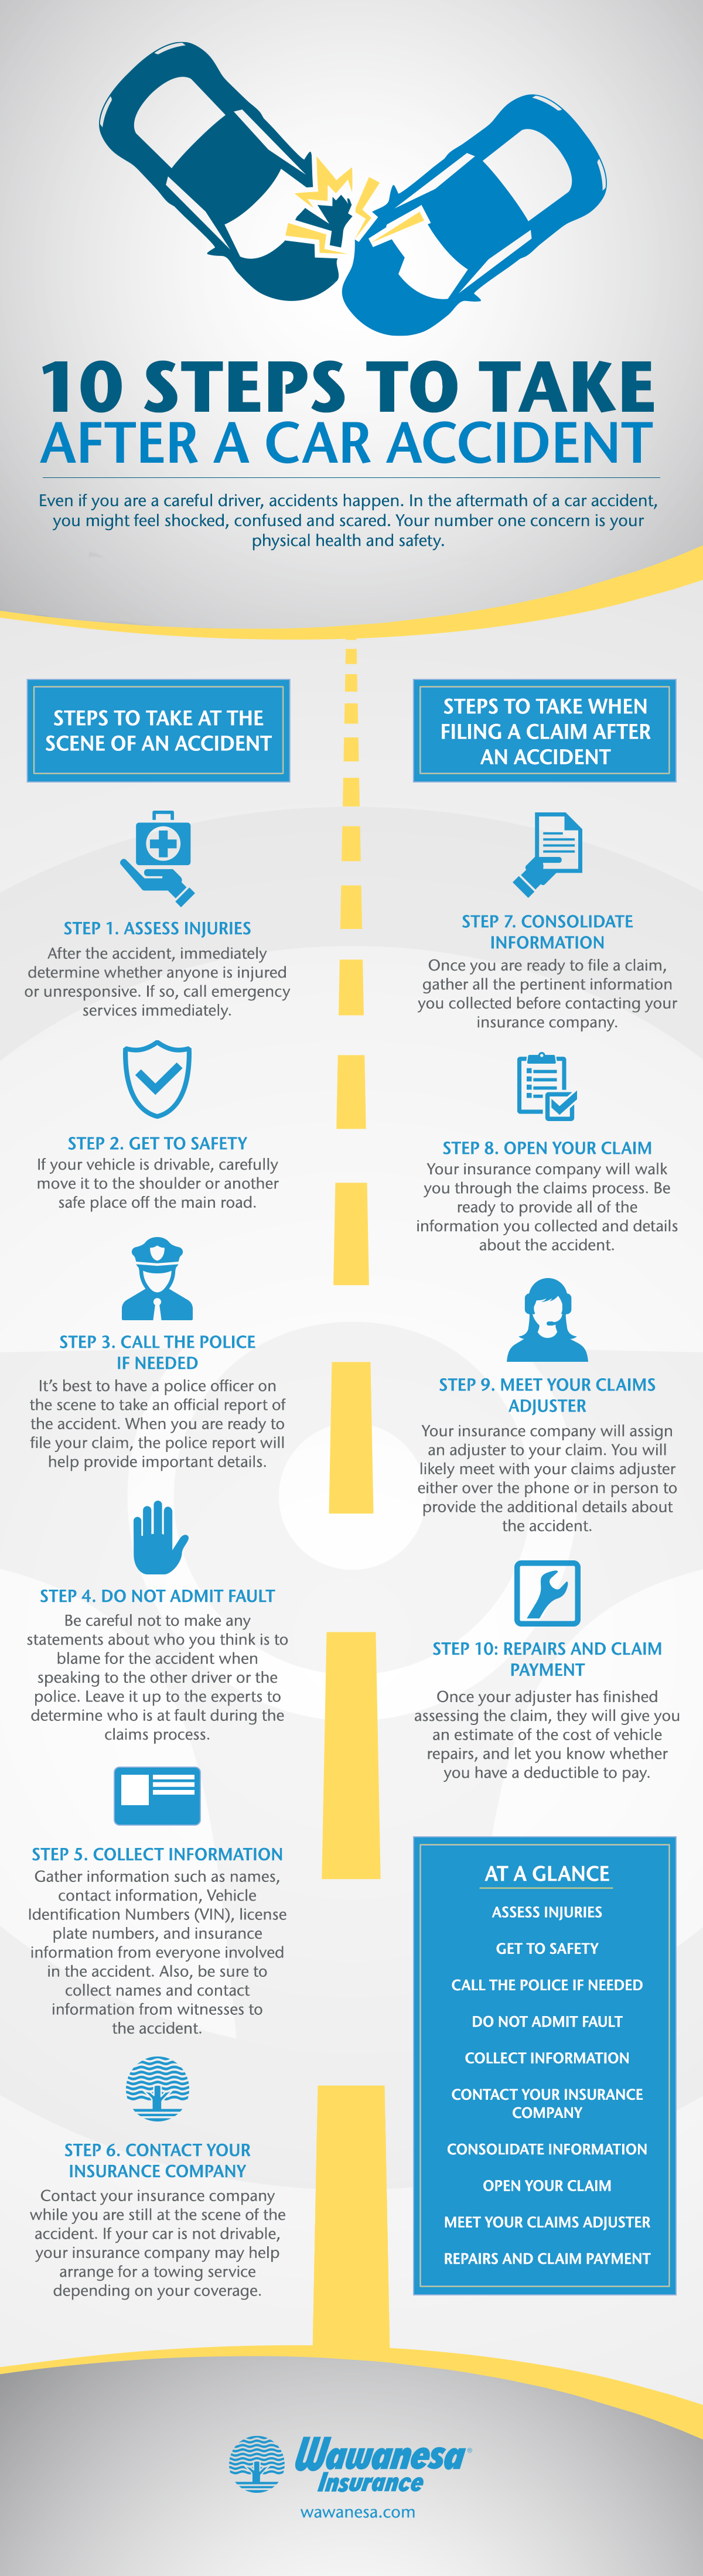 Wawanesa Car Insurance >> What To Do After A Car Accident With Infographic